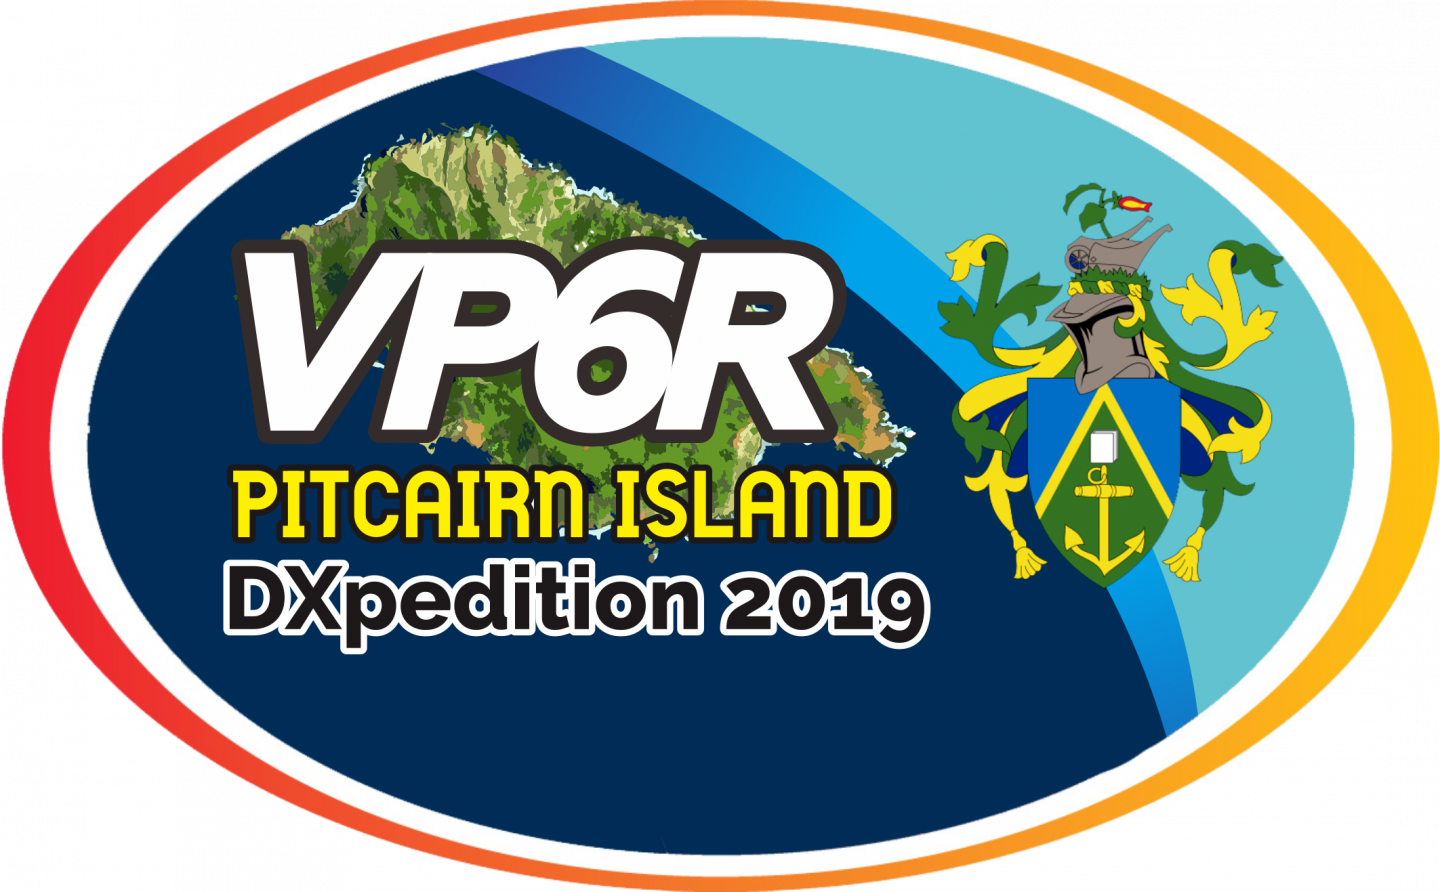 VP6R Pitcairn Island DX Pedition Logo